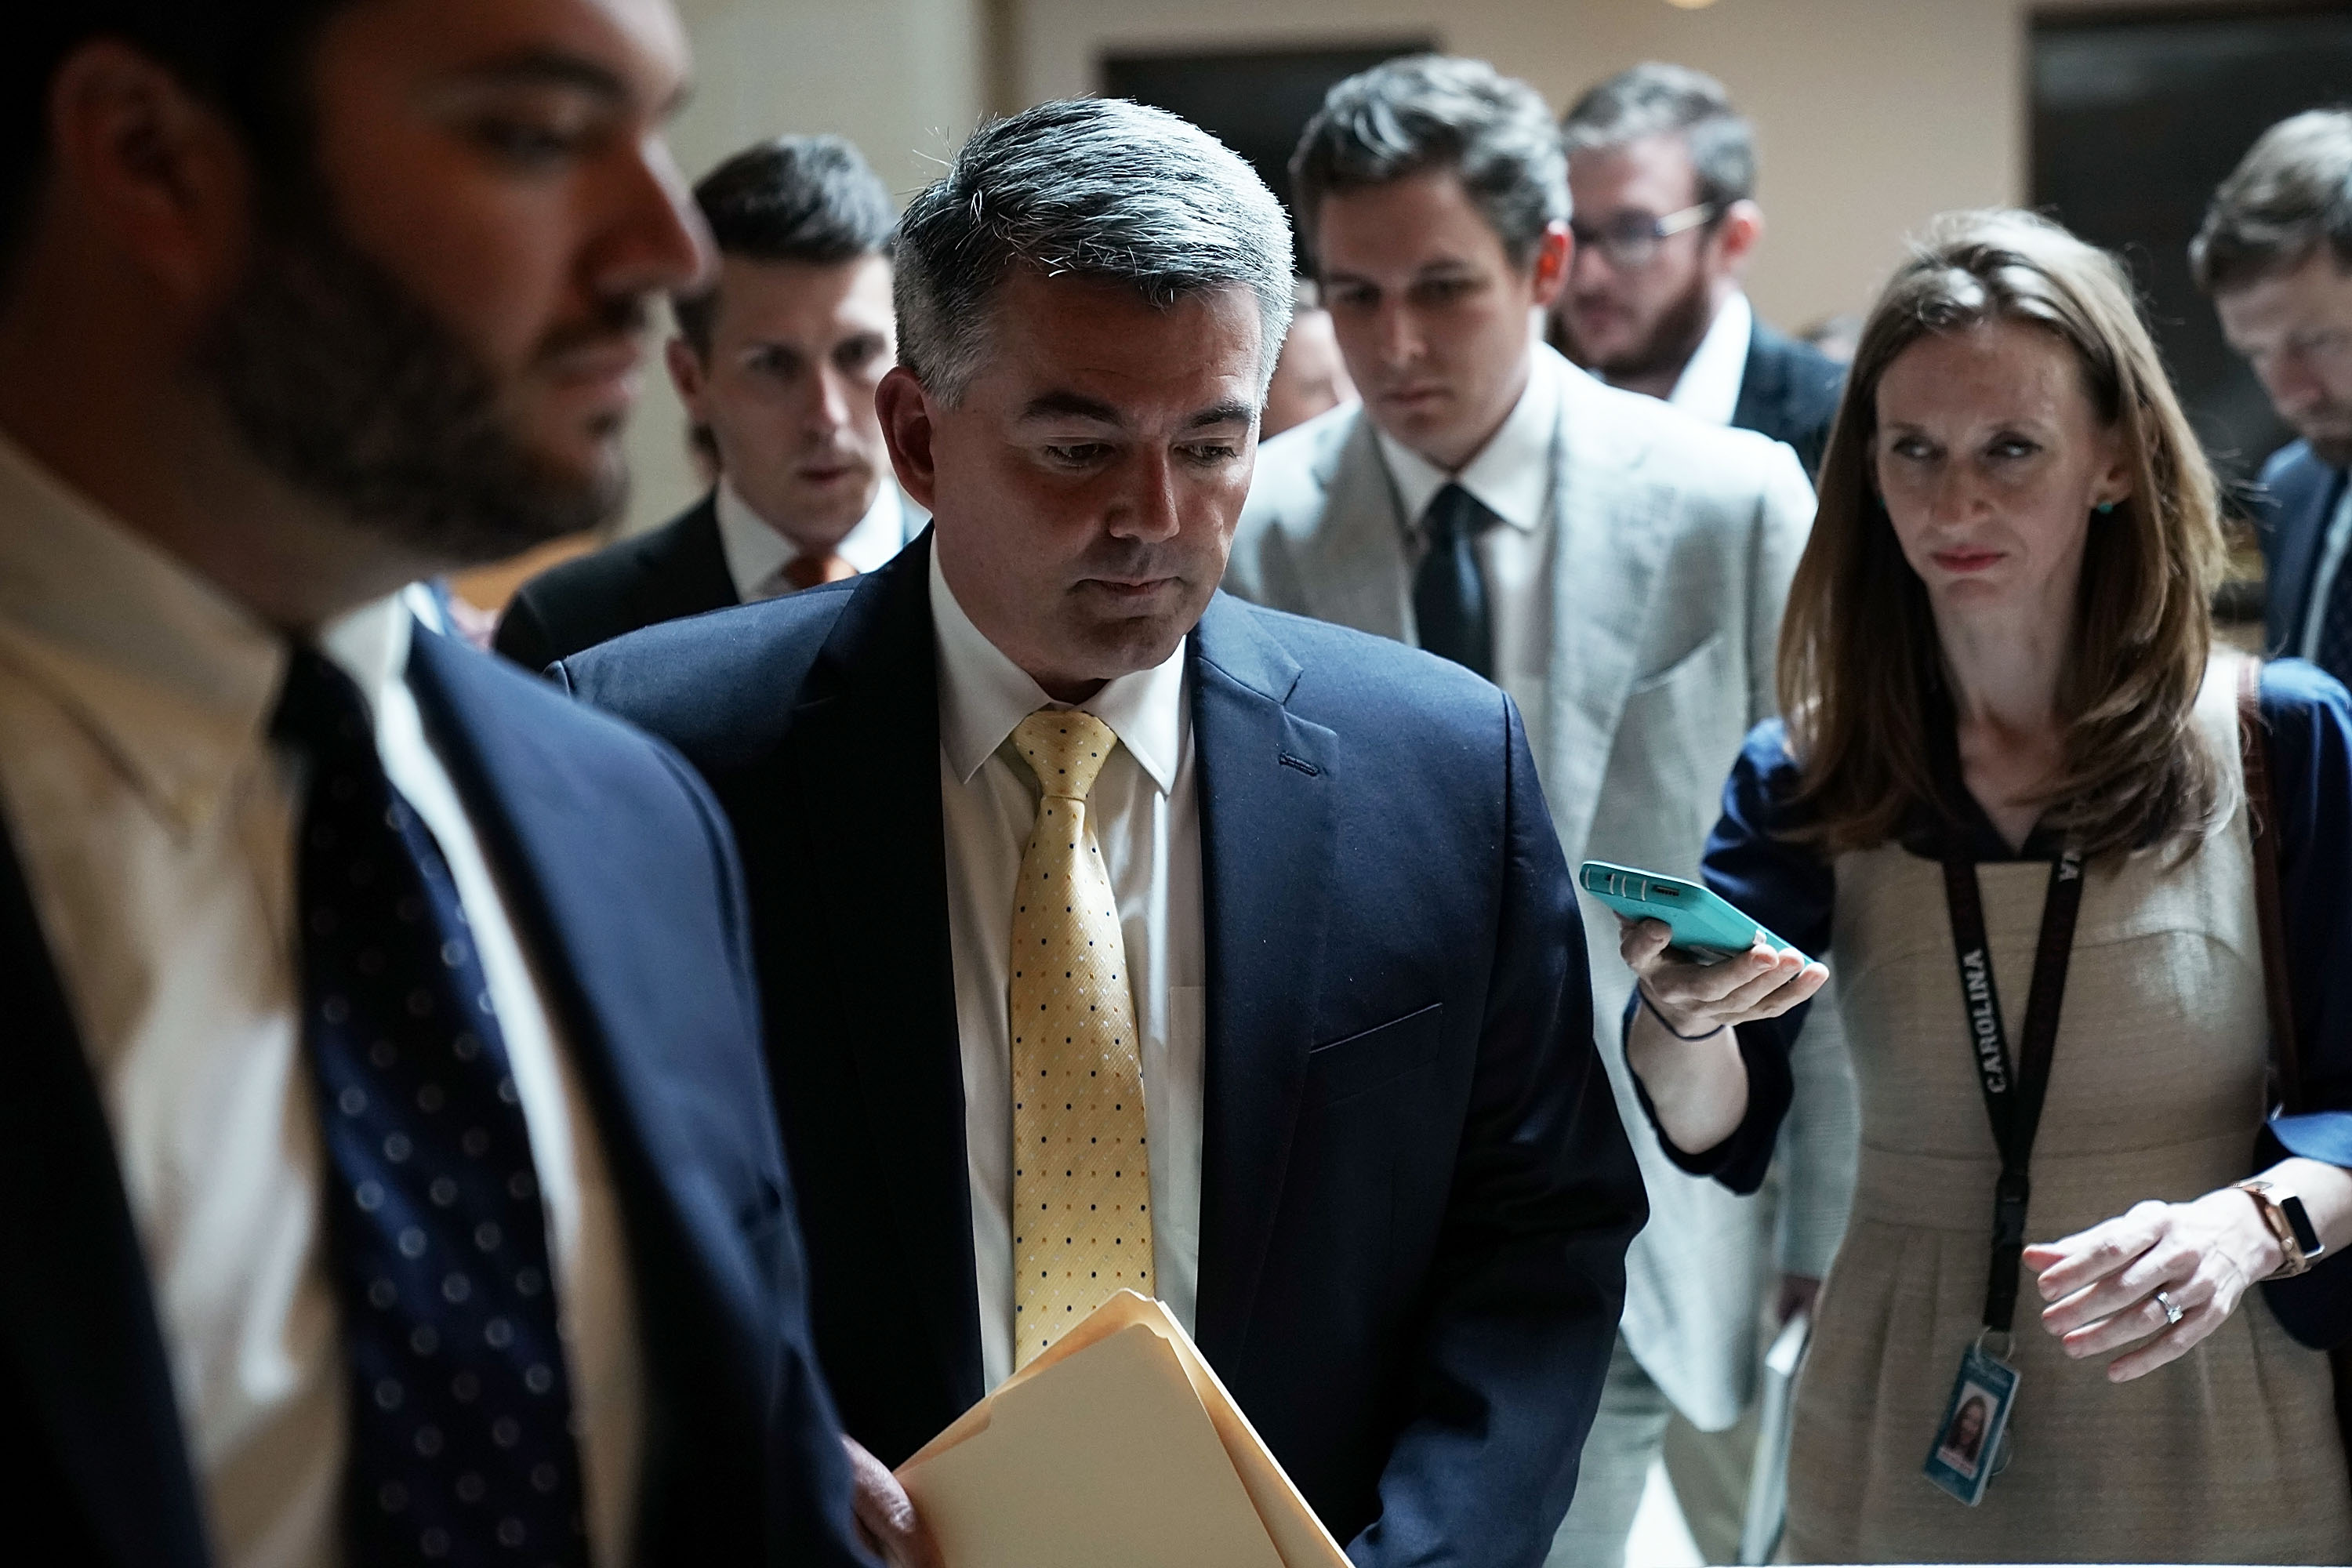 U.S. Sen. Cory Gardner arrives at the U.S. Capitol for a closed briefing August 22, 2018 in Washington, DC. Alex Wong/Getty Images